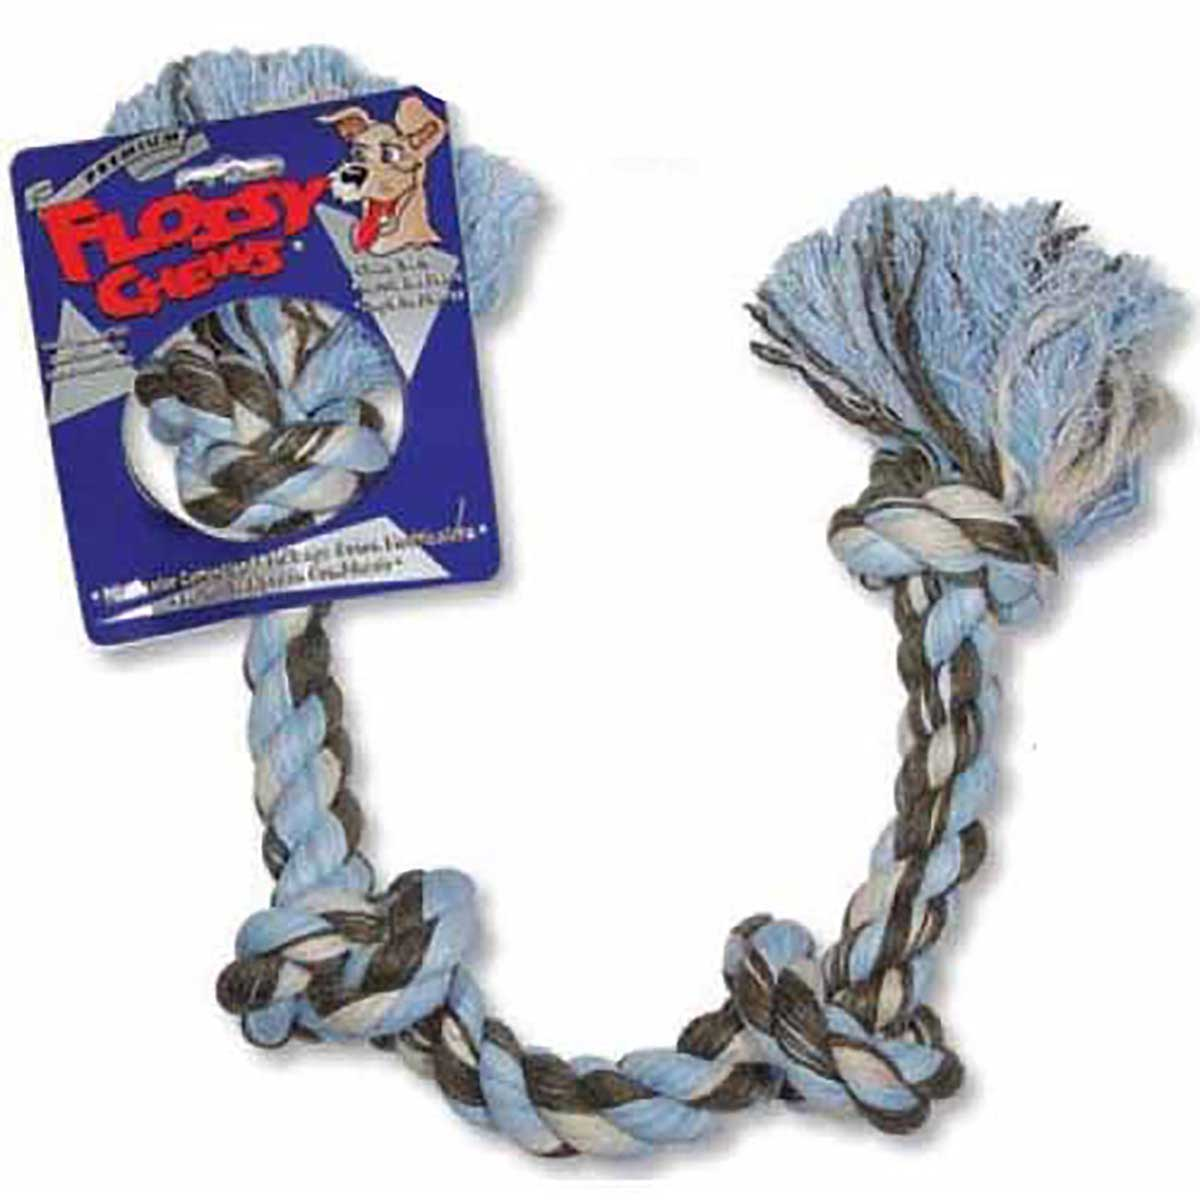 Mammoth Large 4 Knot Colored Rope Tug Toy for Dogs - 27 inch